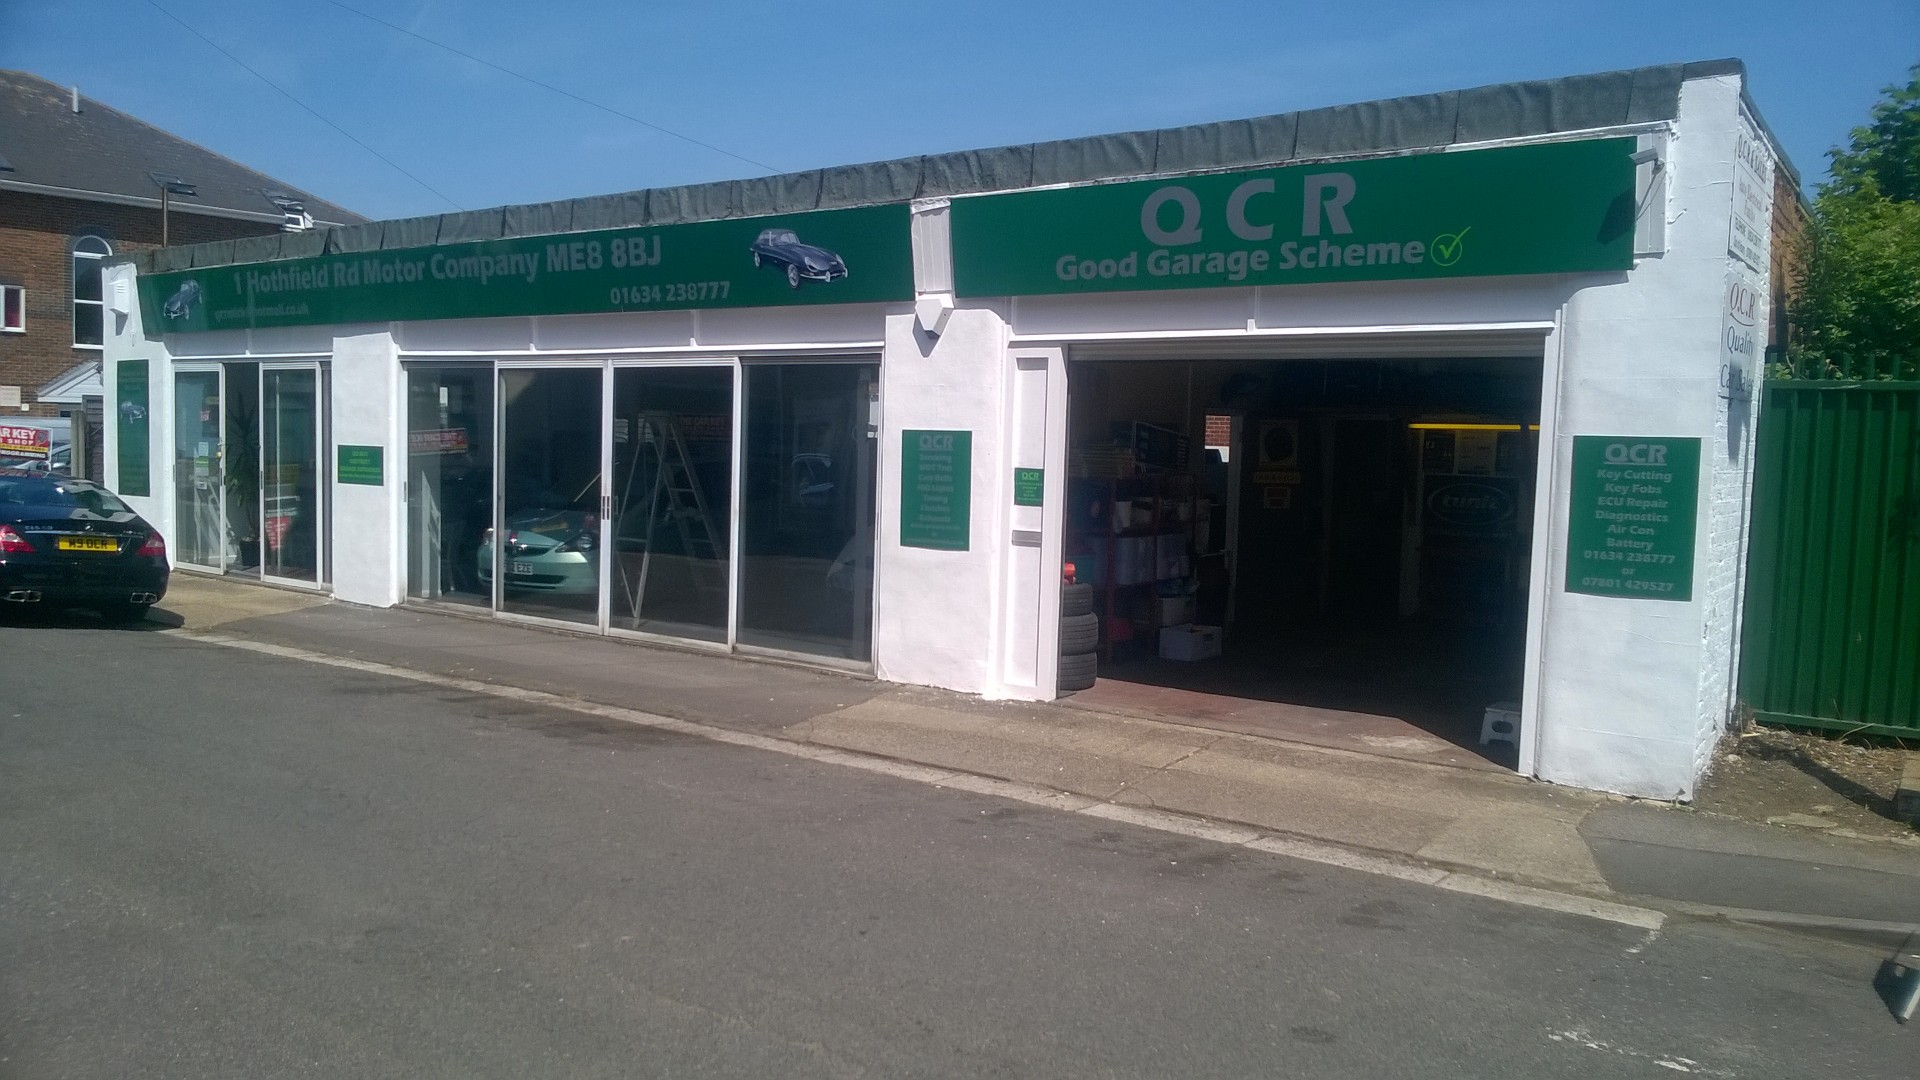 QCR Car Repairs For All Repairs